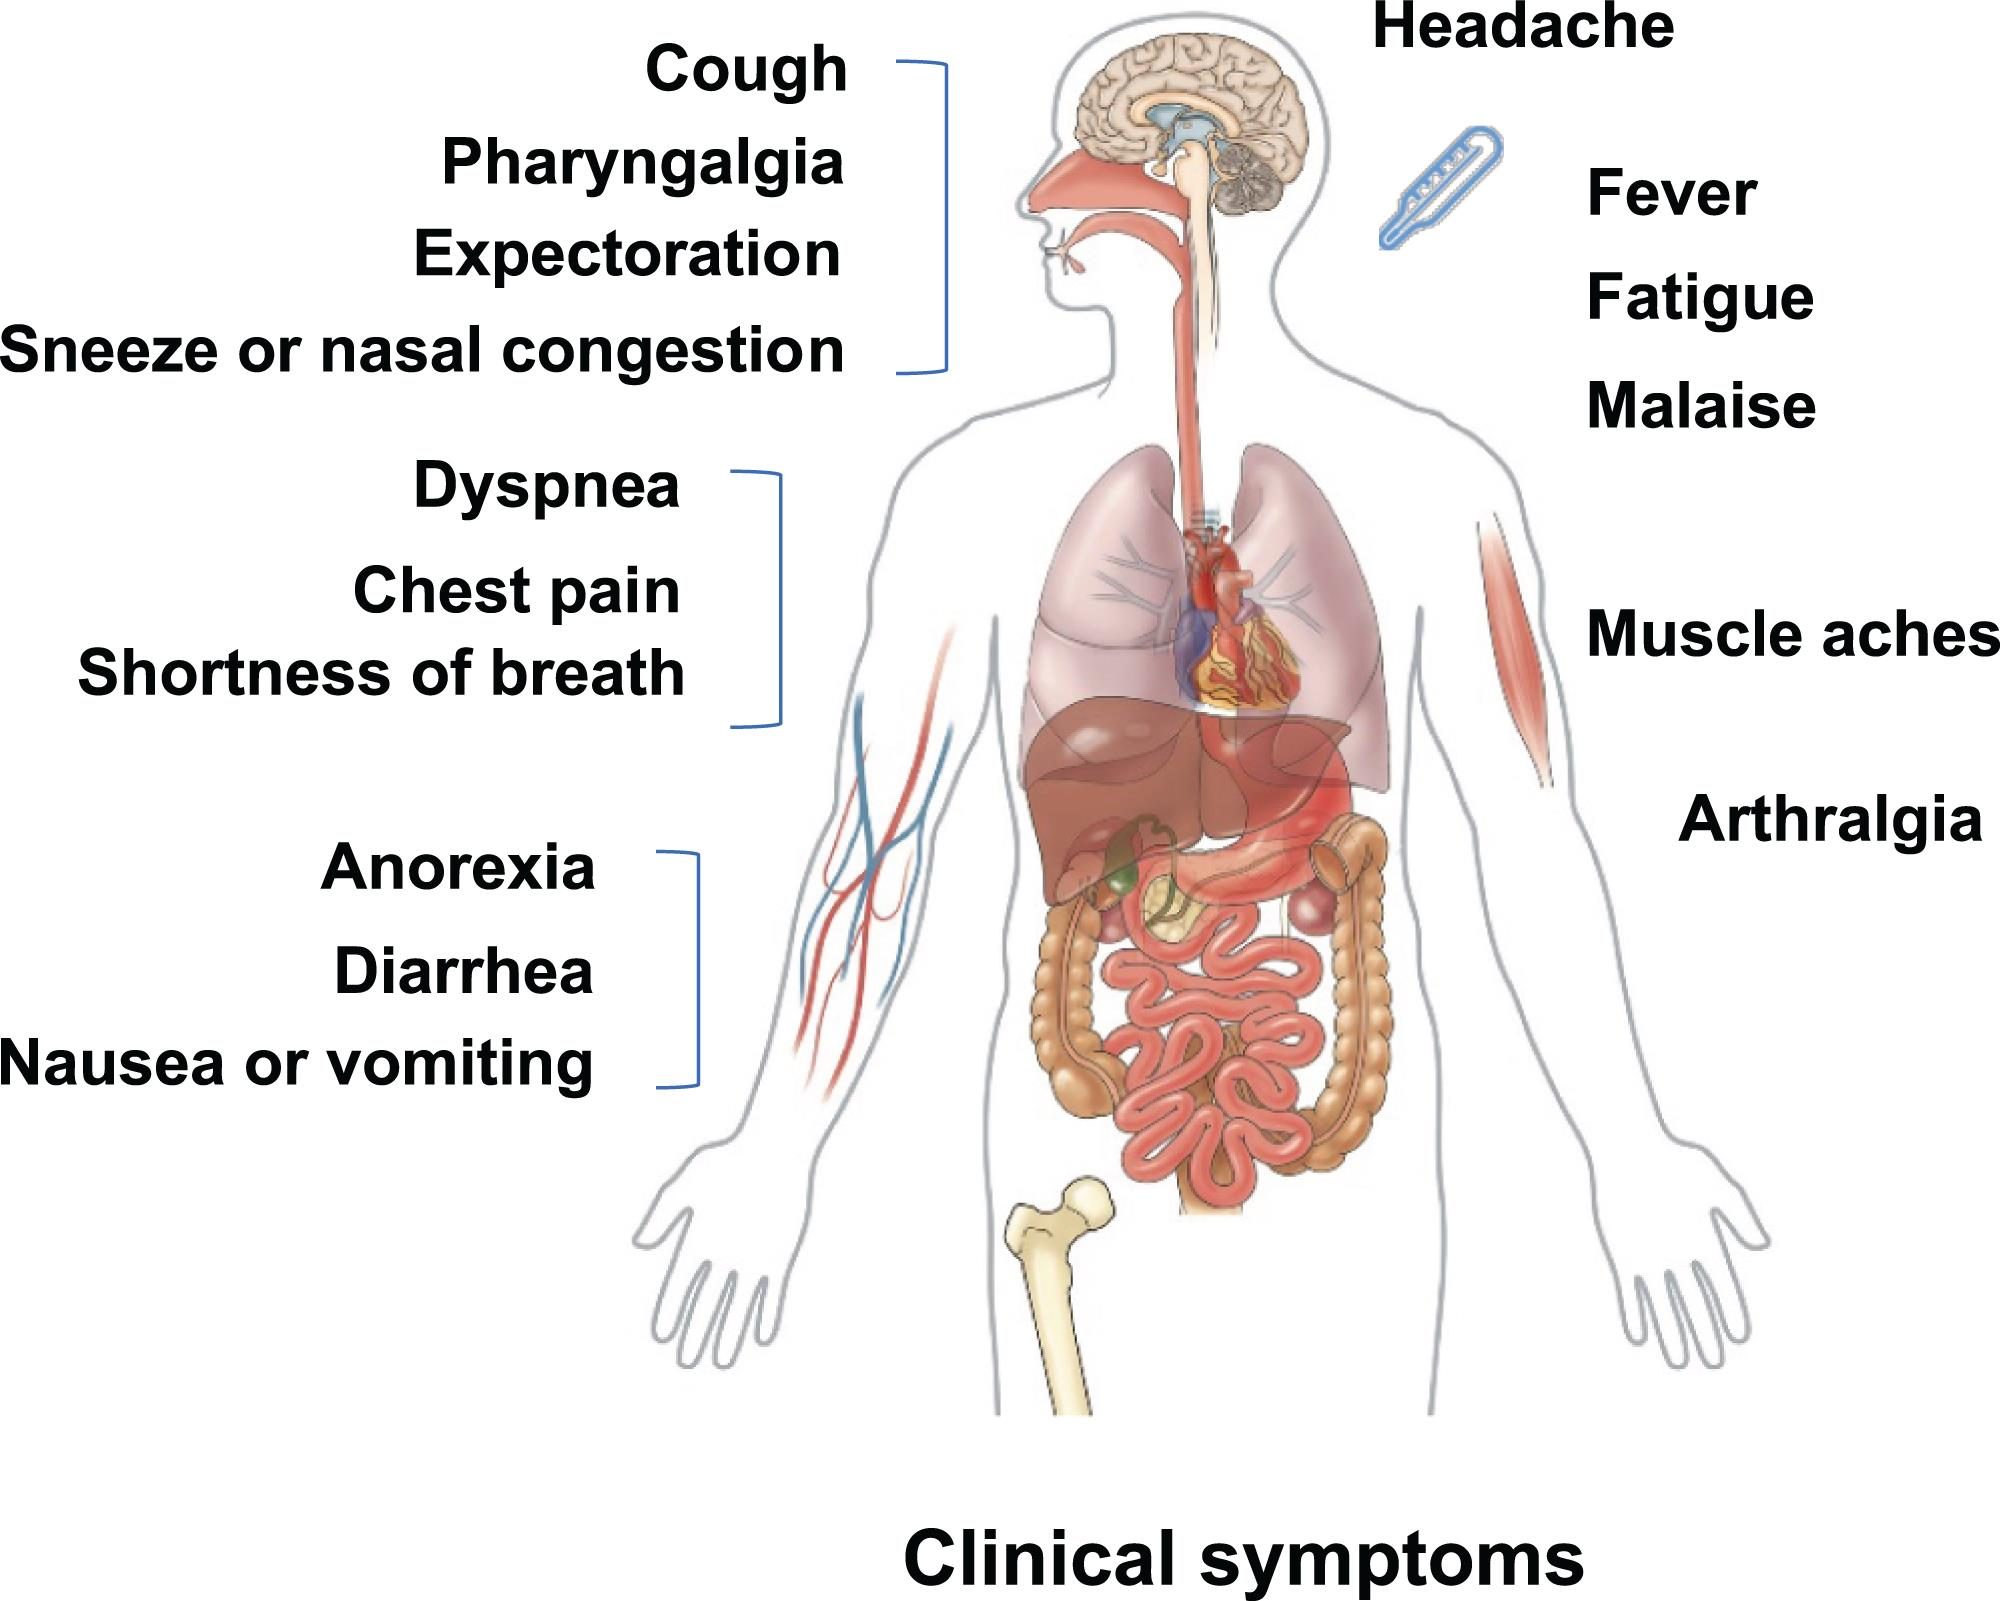 <bold>Clinical symptoms of patients with 2019 coronavirus disease</bold>.